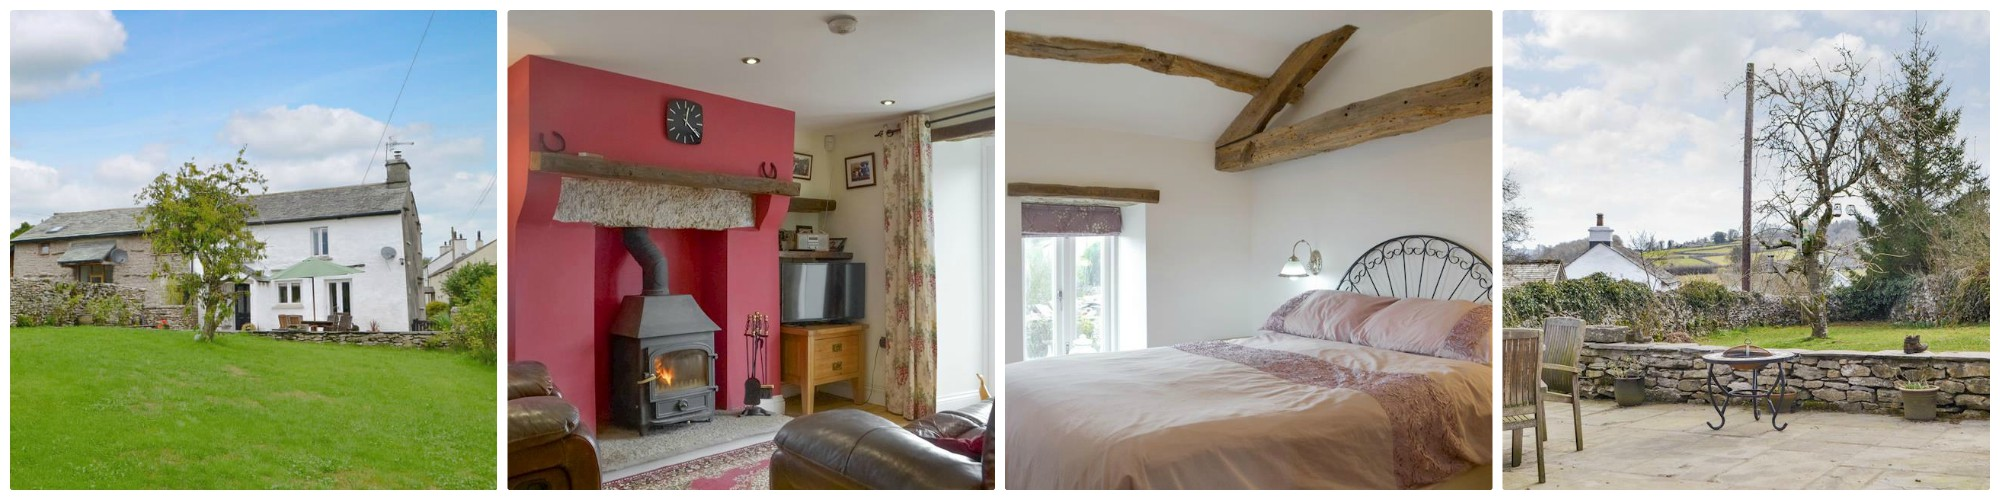 sleeps 5 with wood-burning stove - five complimentary passes to local leisure facilities including Jacuzzi